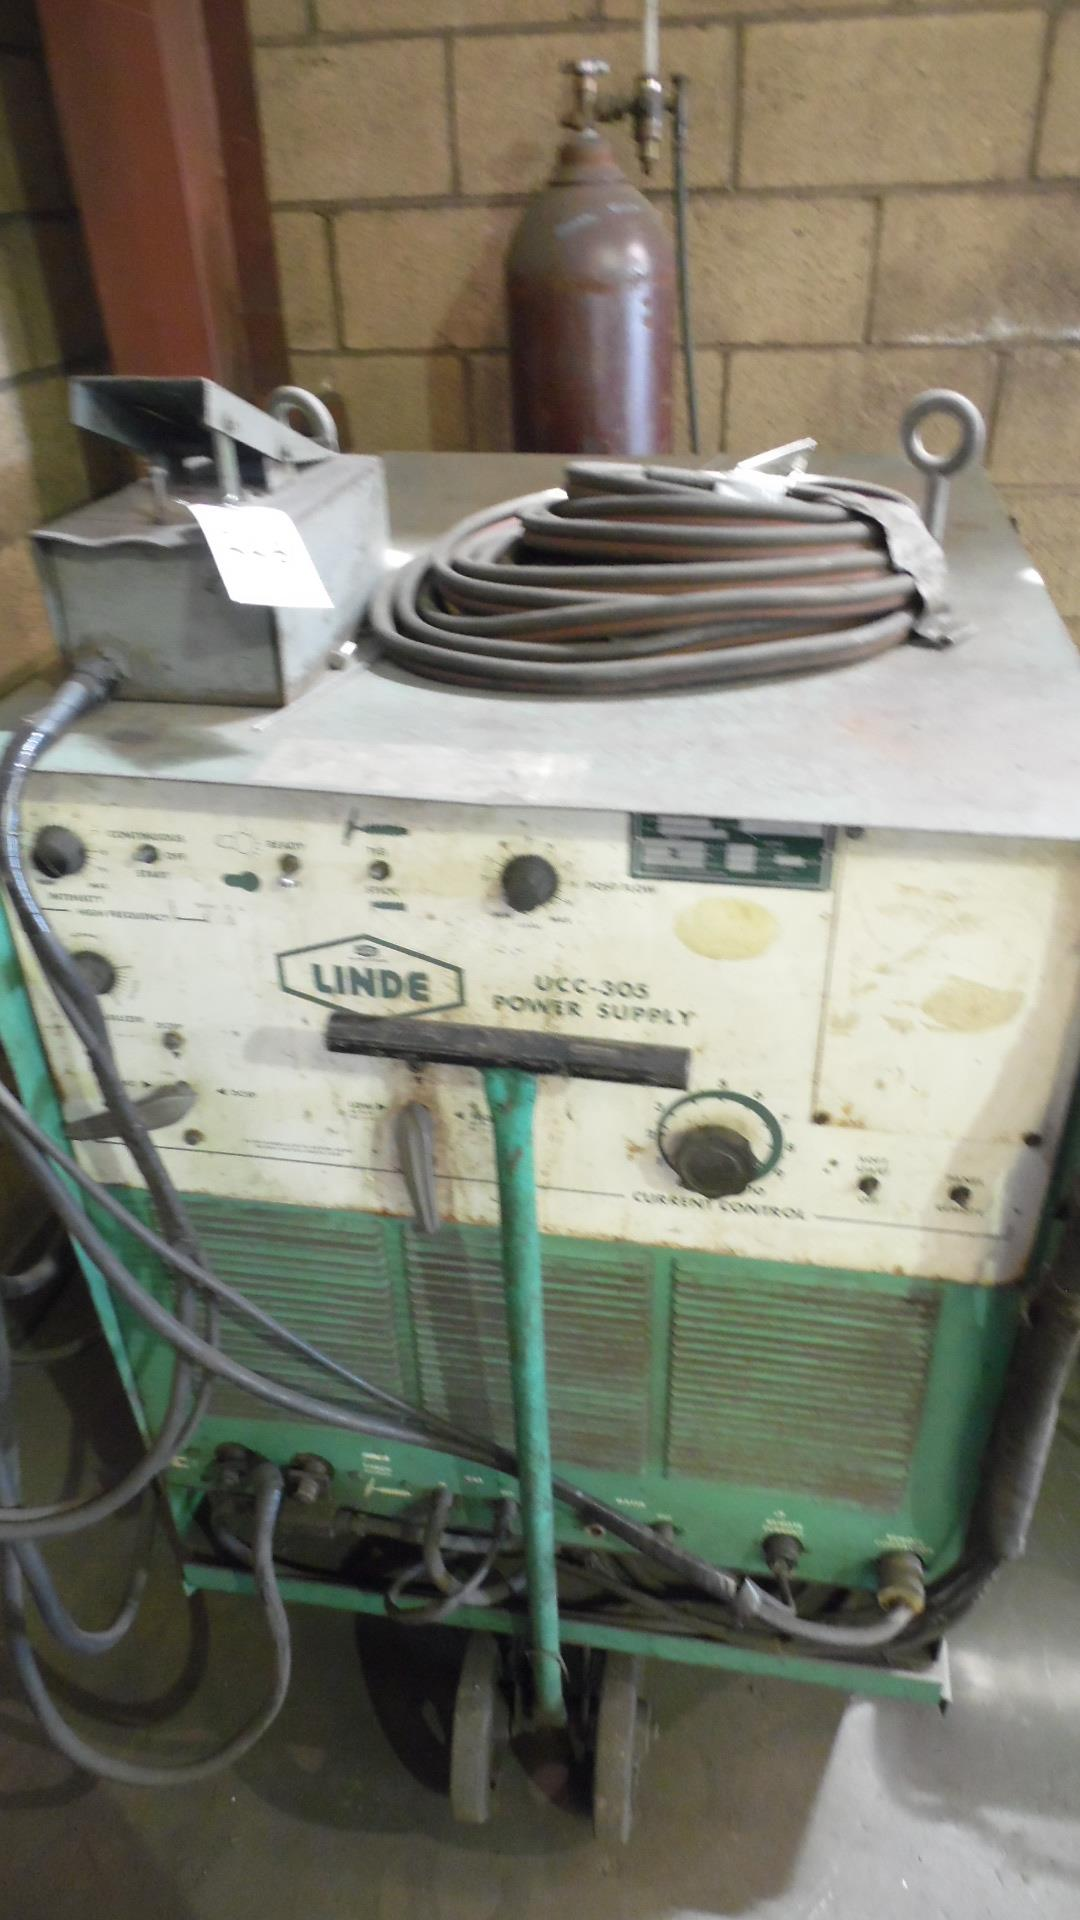 Lot 223 - LINDE UCC-305 POWER SUPPLY